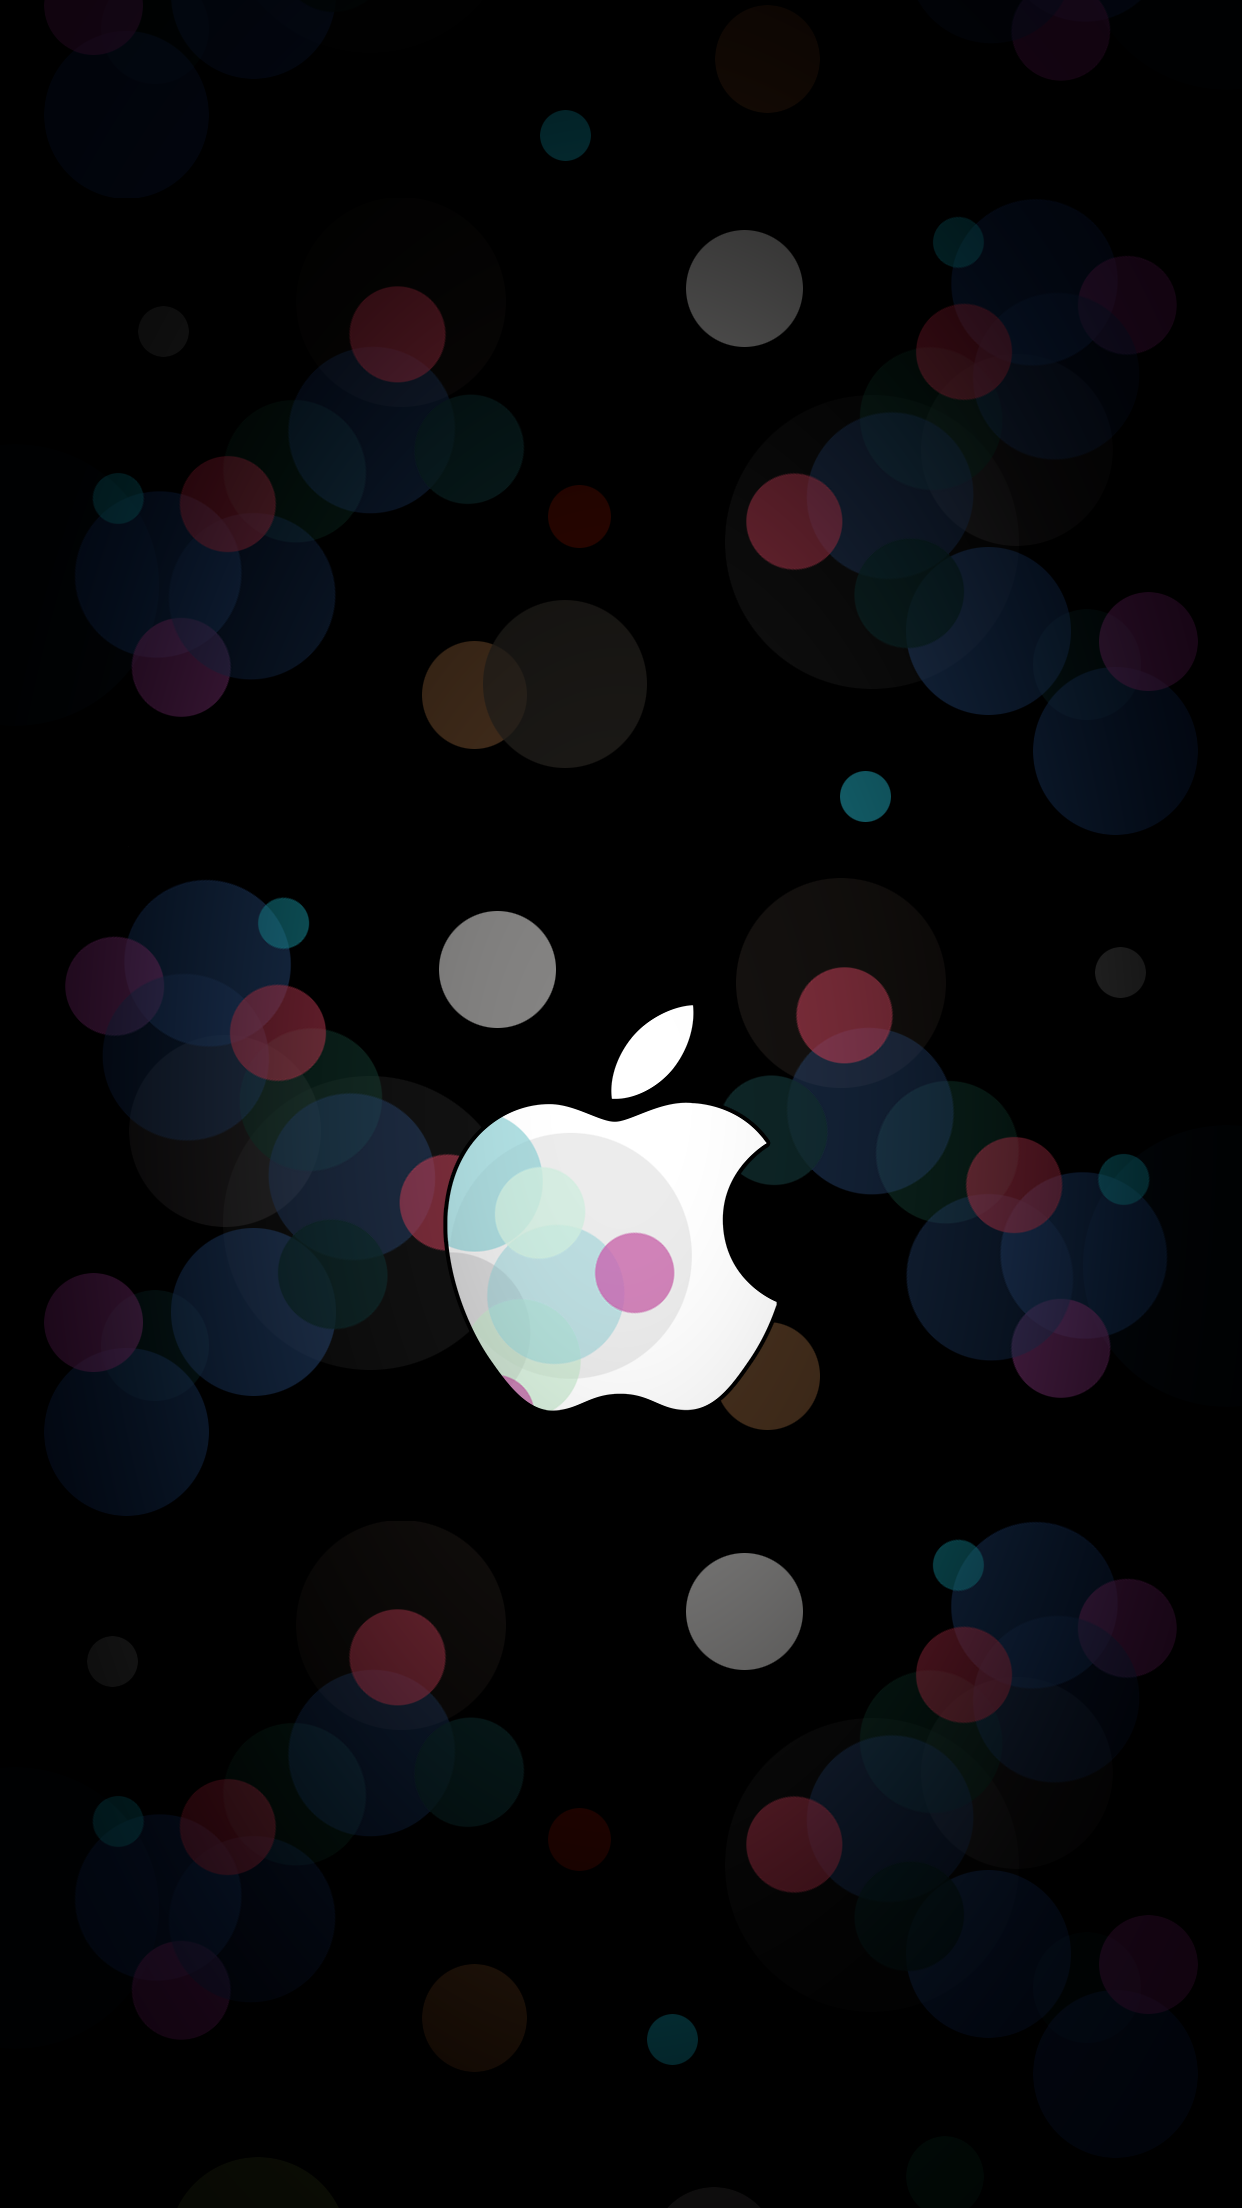 More September 7 Apple media event wallpapers 1242x2208